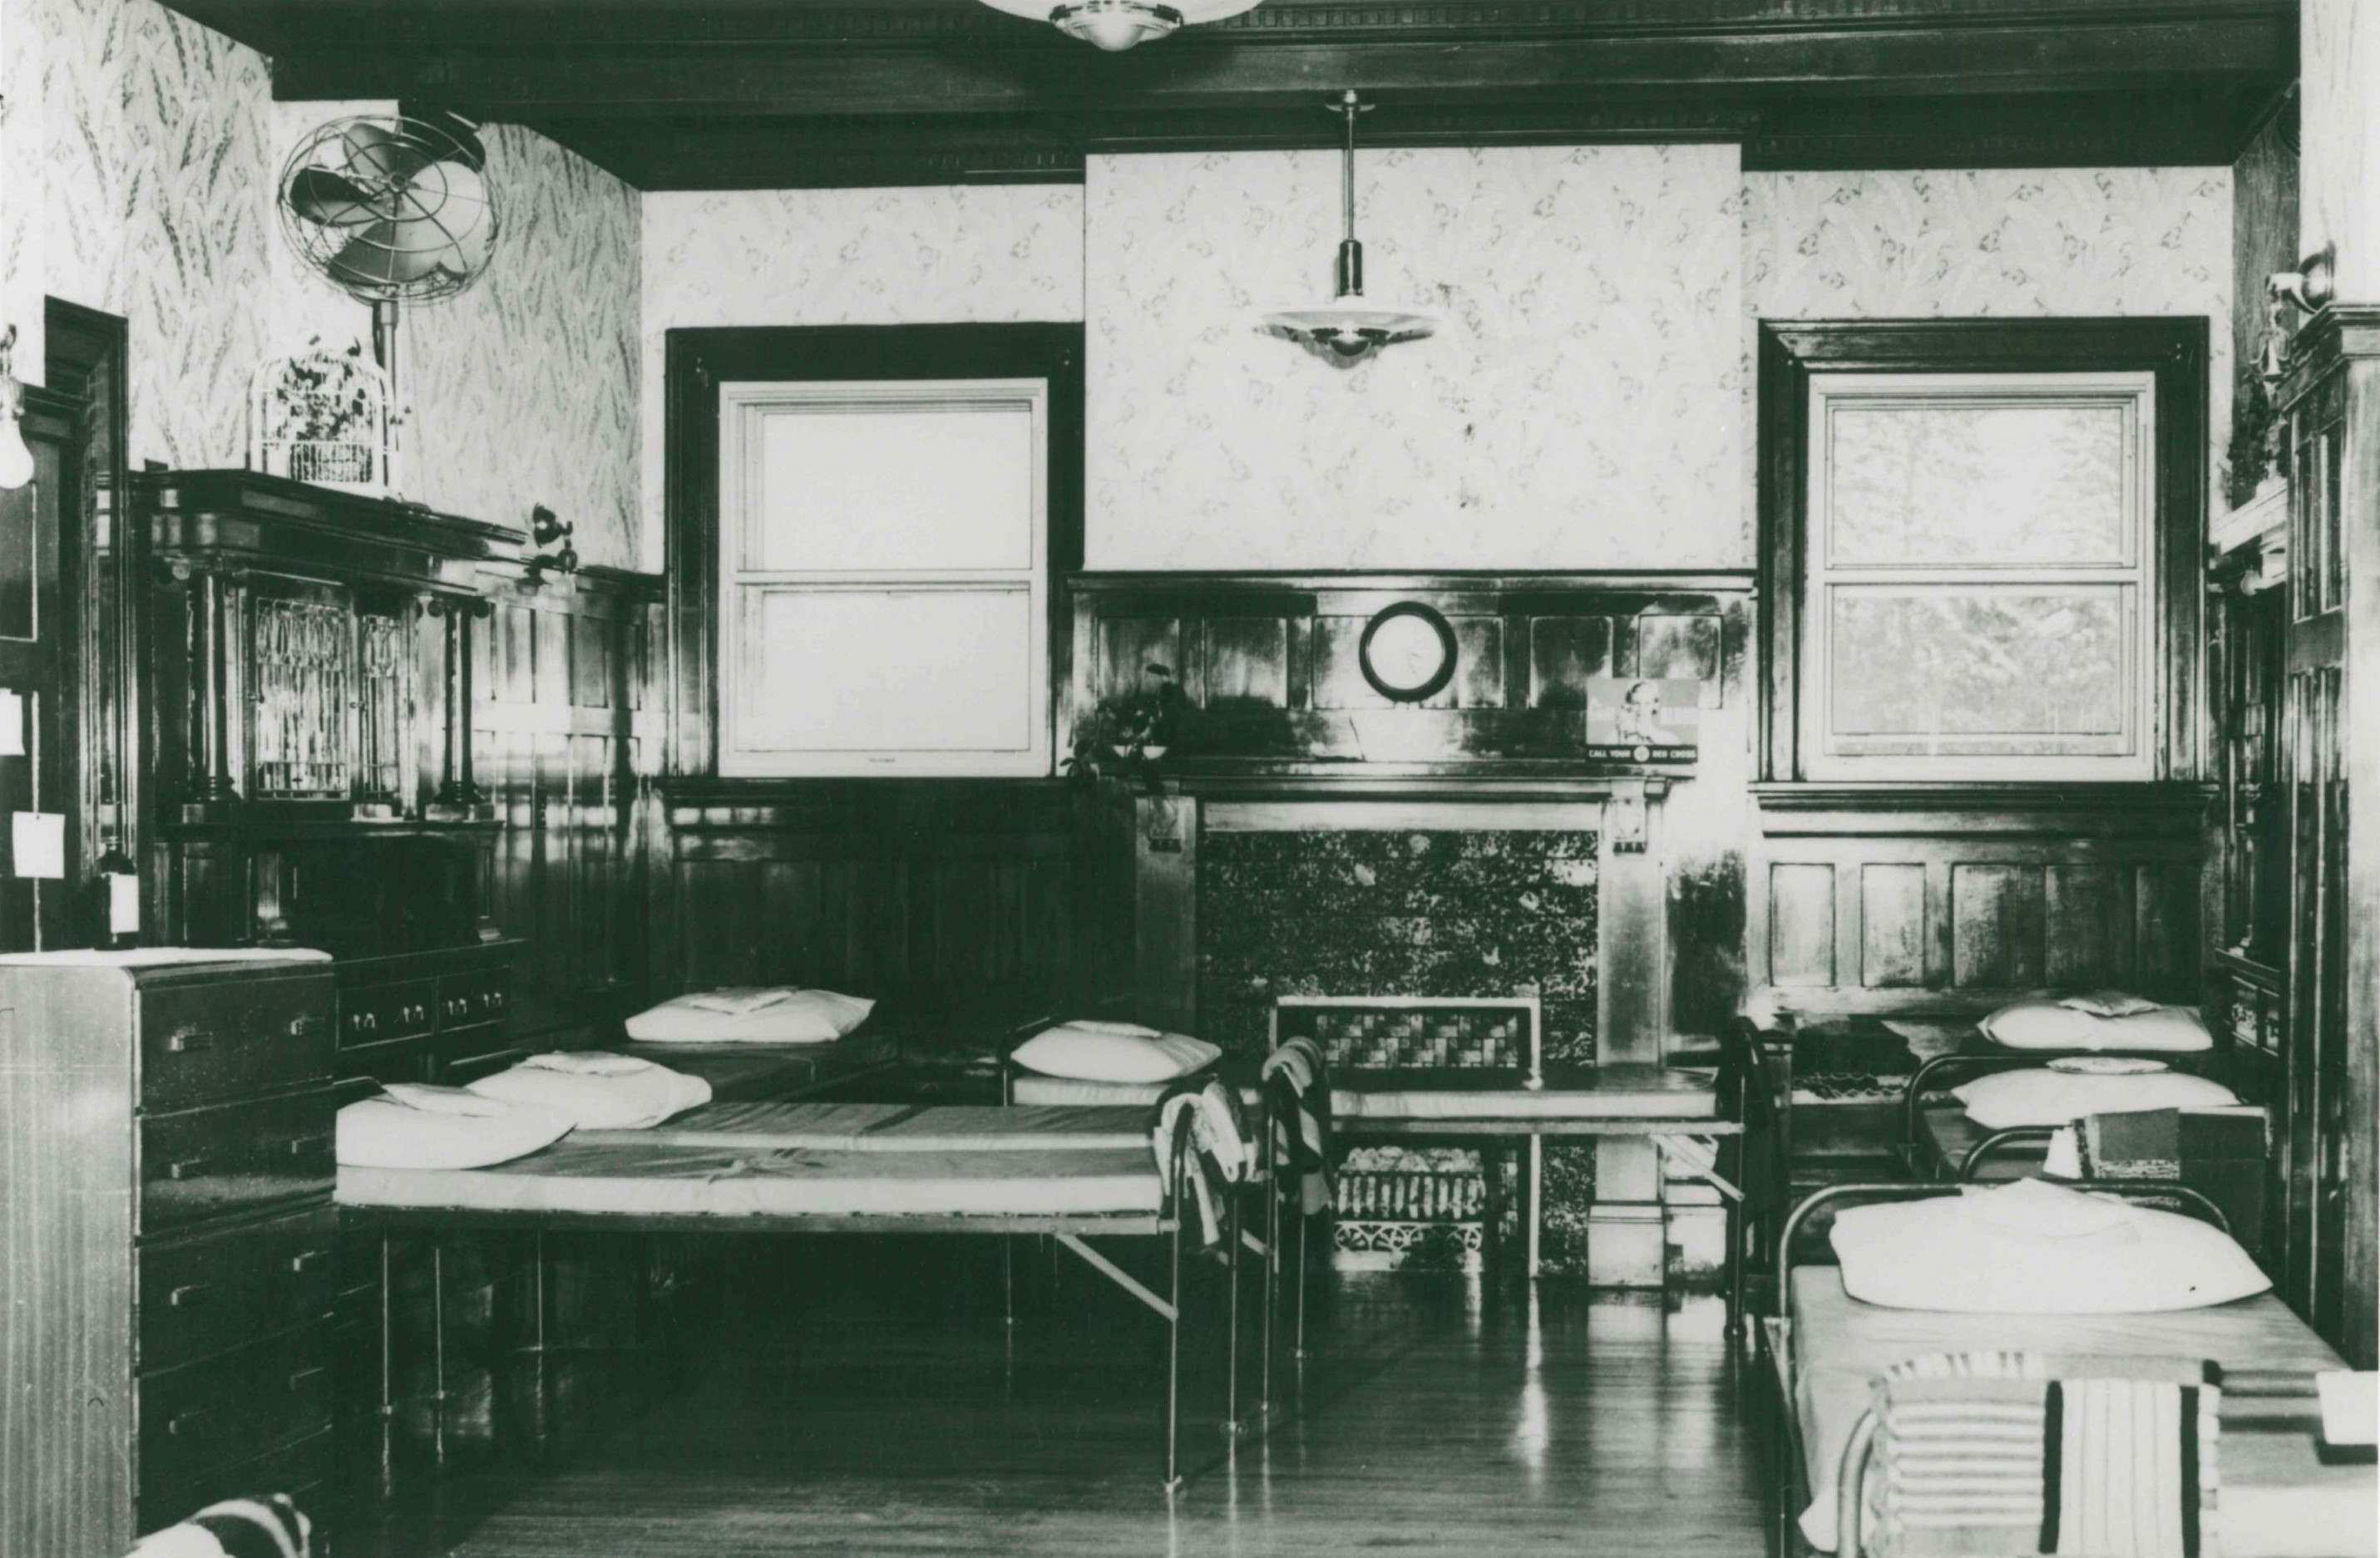 Image 5, Dining Room during the Red Cross Occupation, 1950's